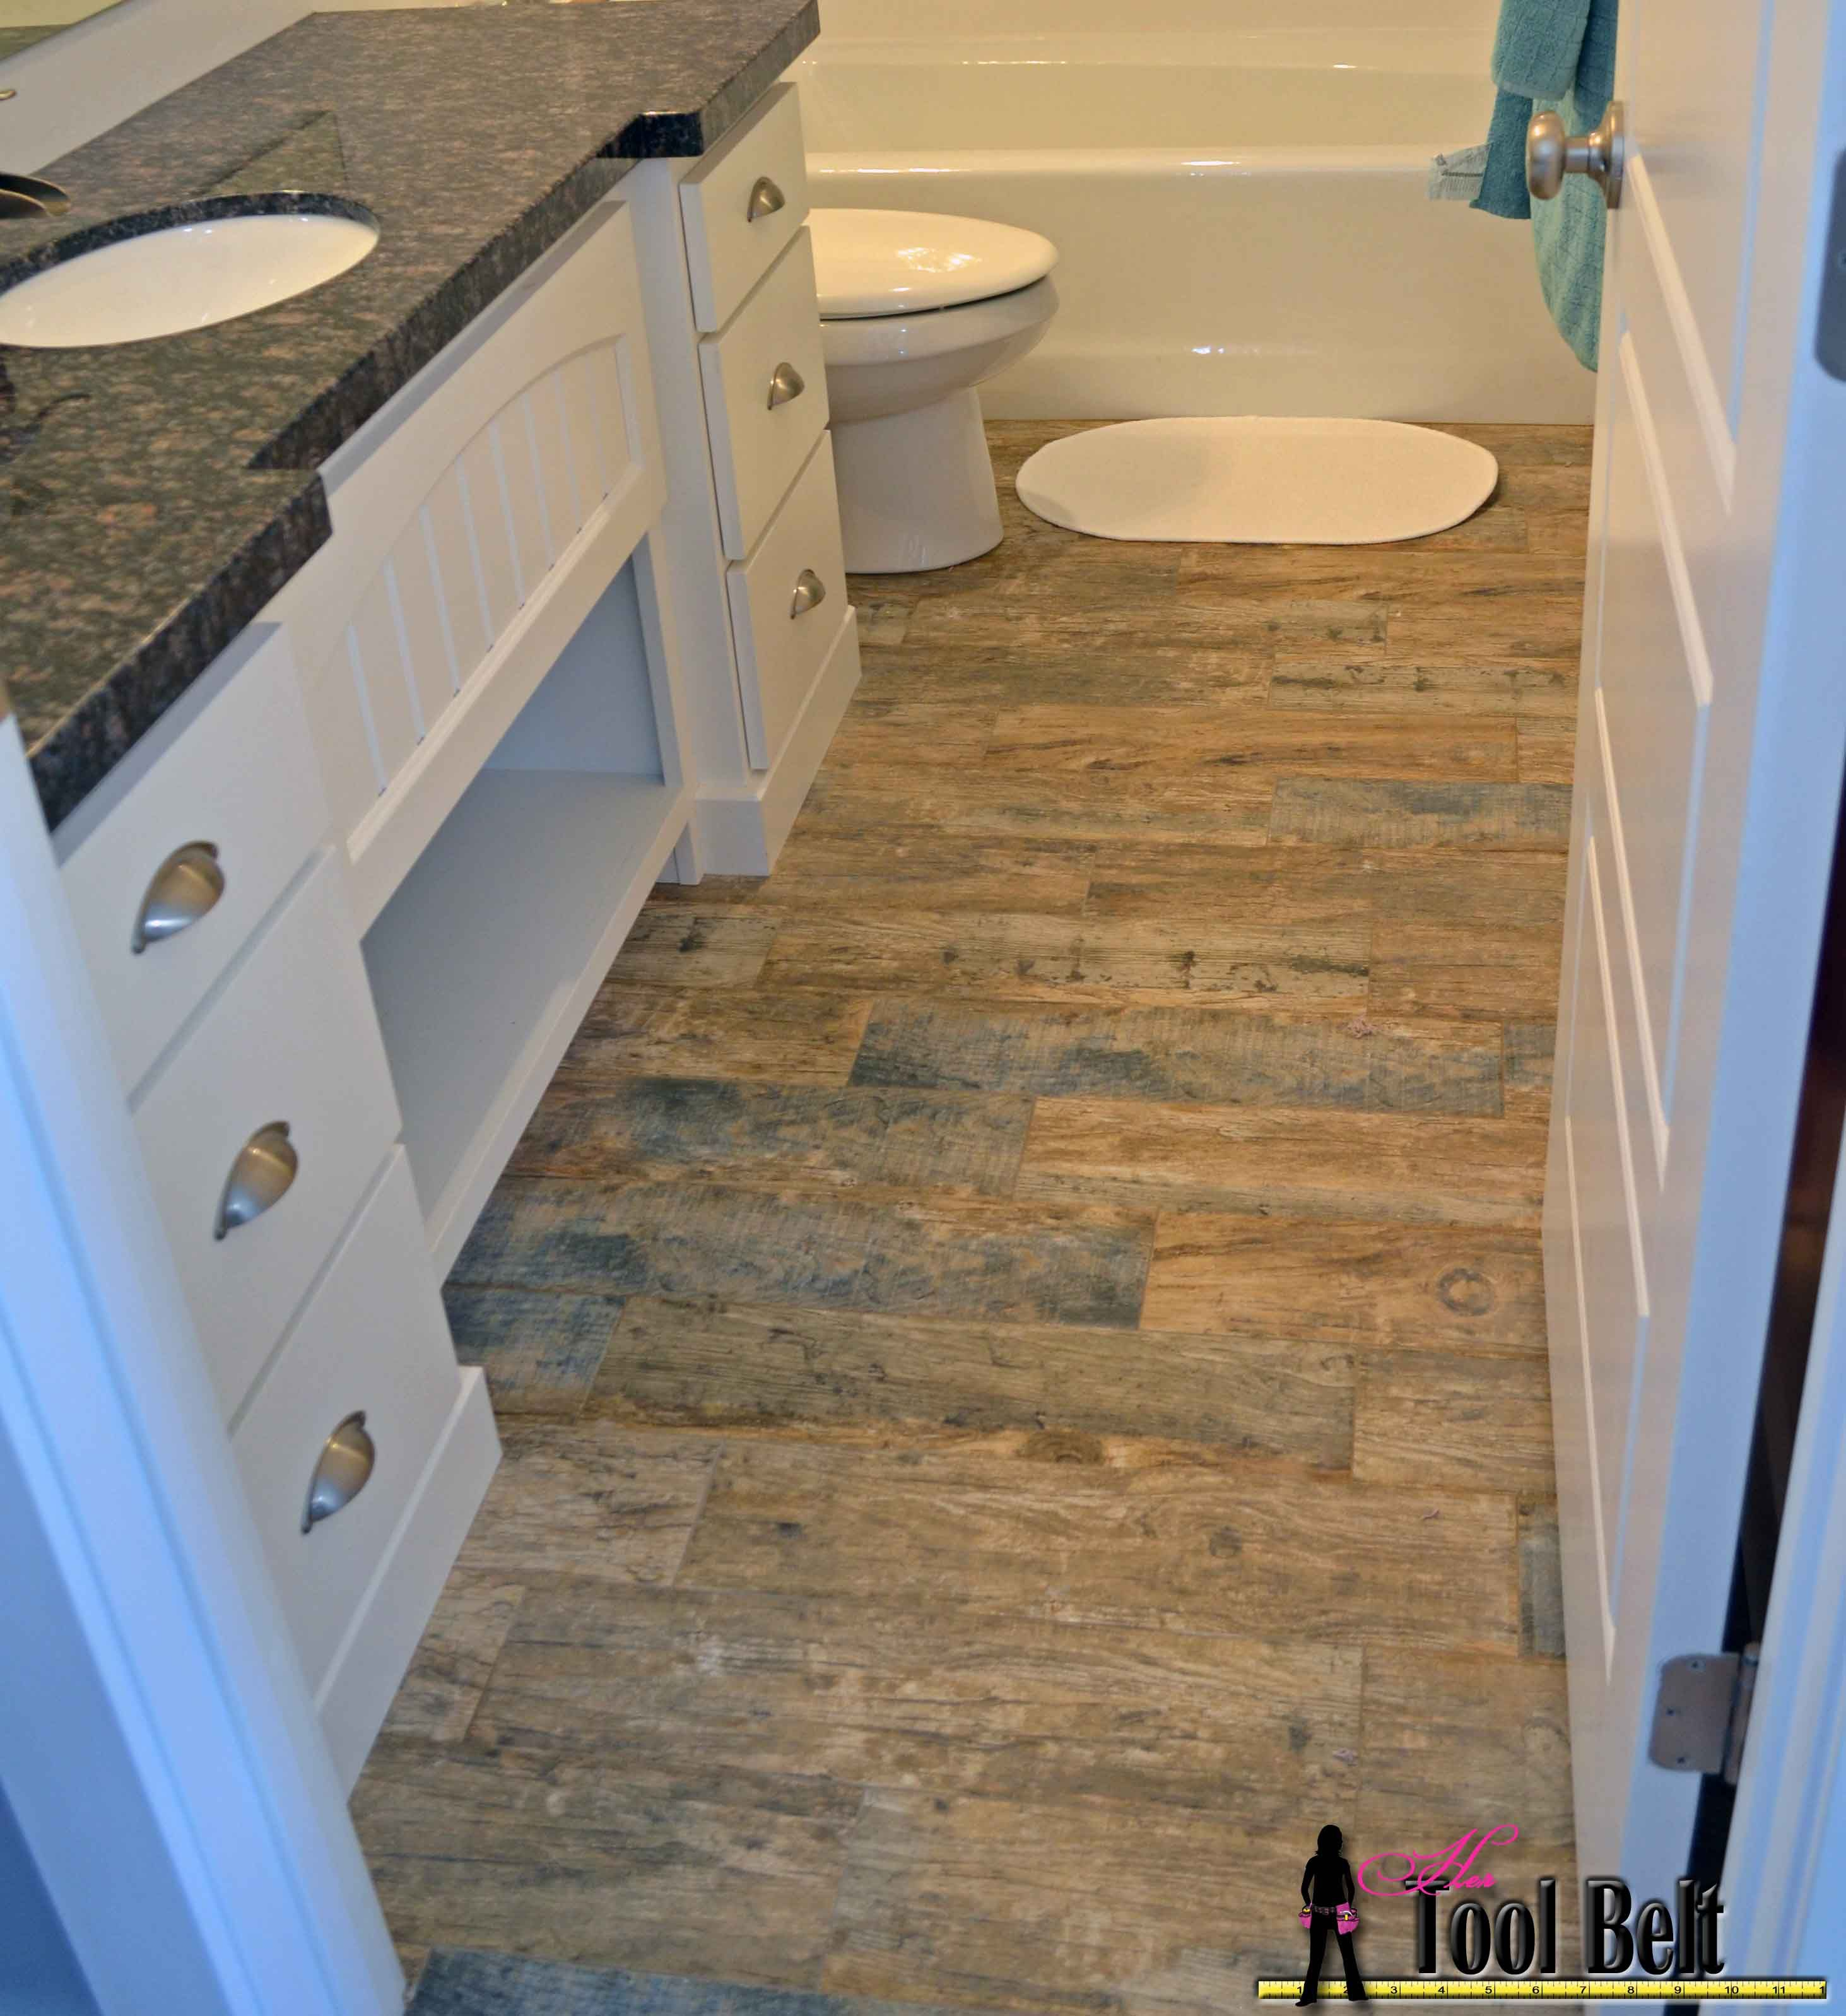 How To Put Ceramic Tile In Bathroom Floor: Pin By Holly Simoni On A-Bathrooms